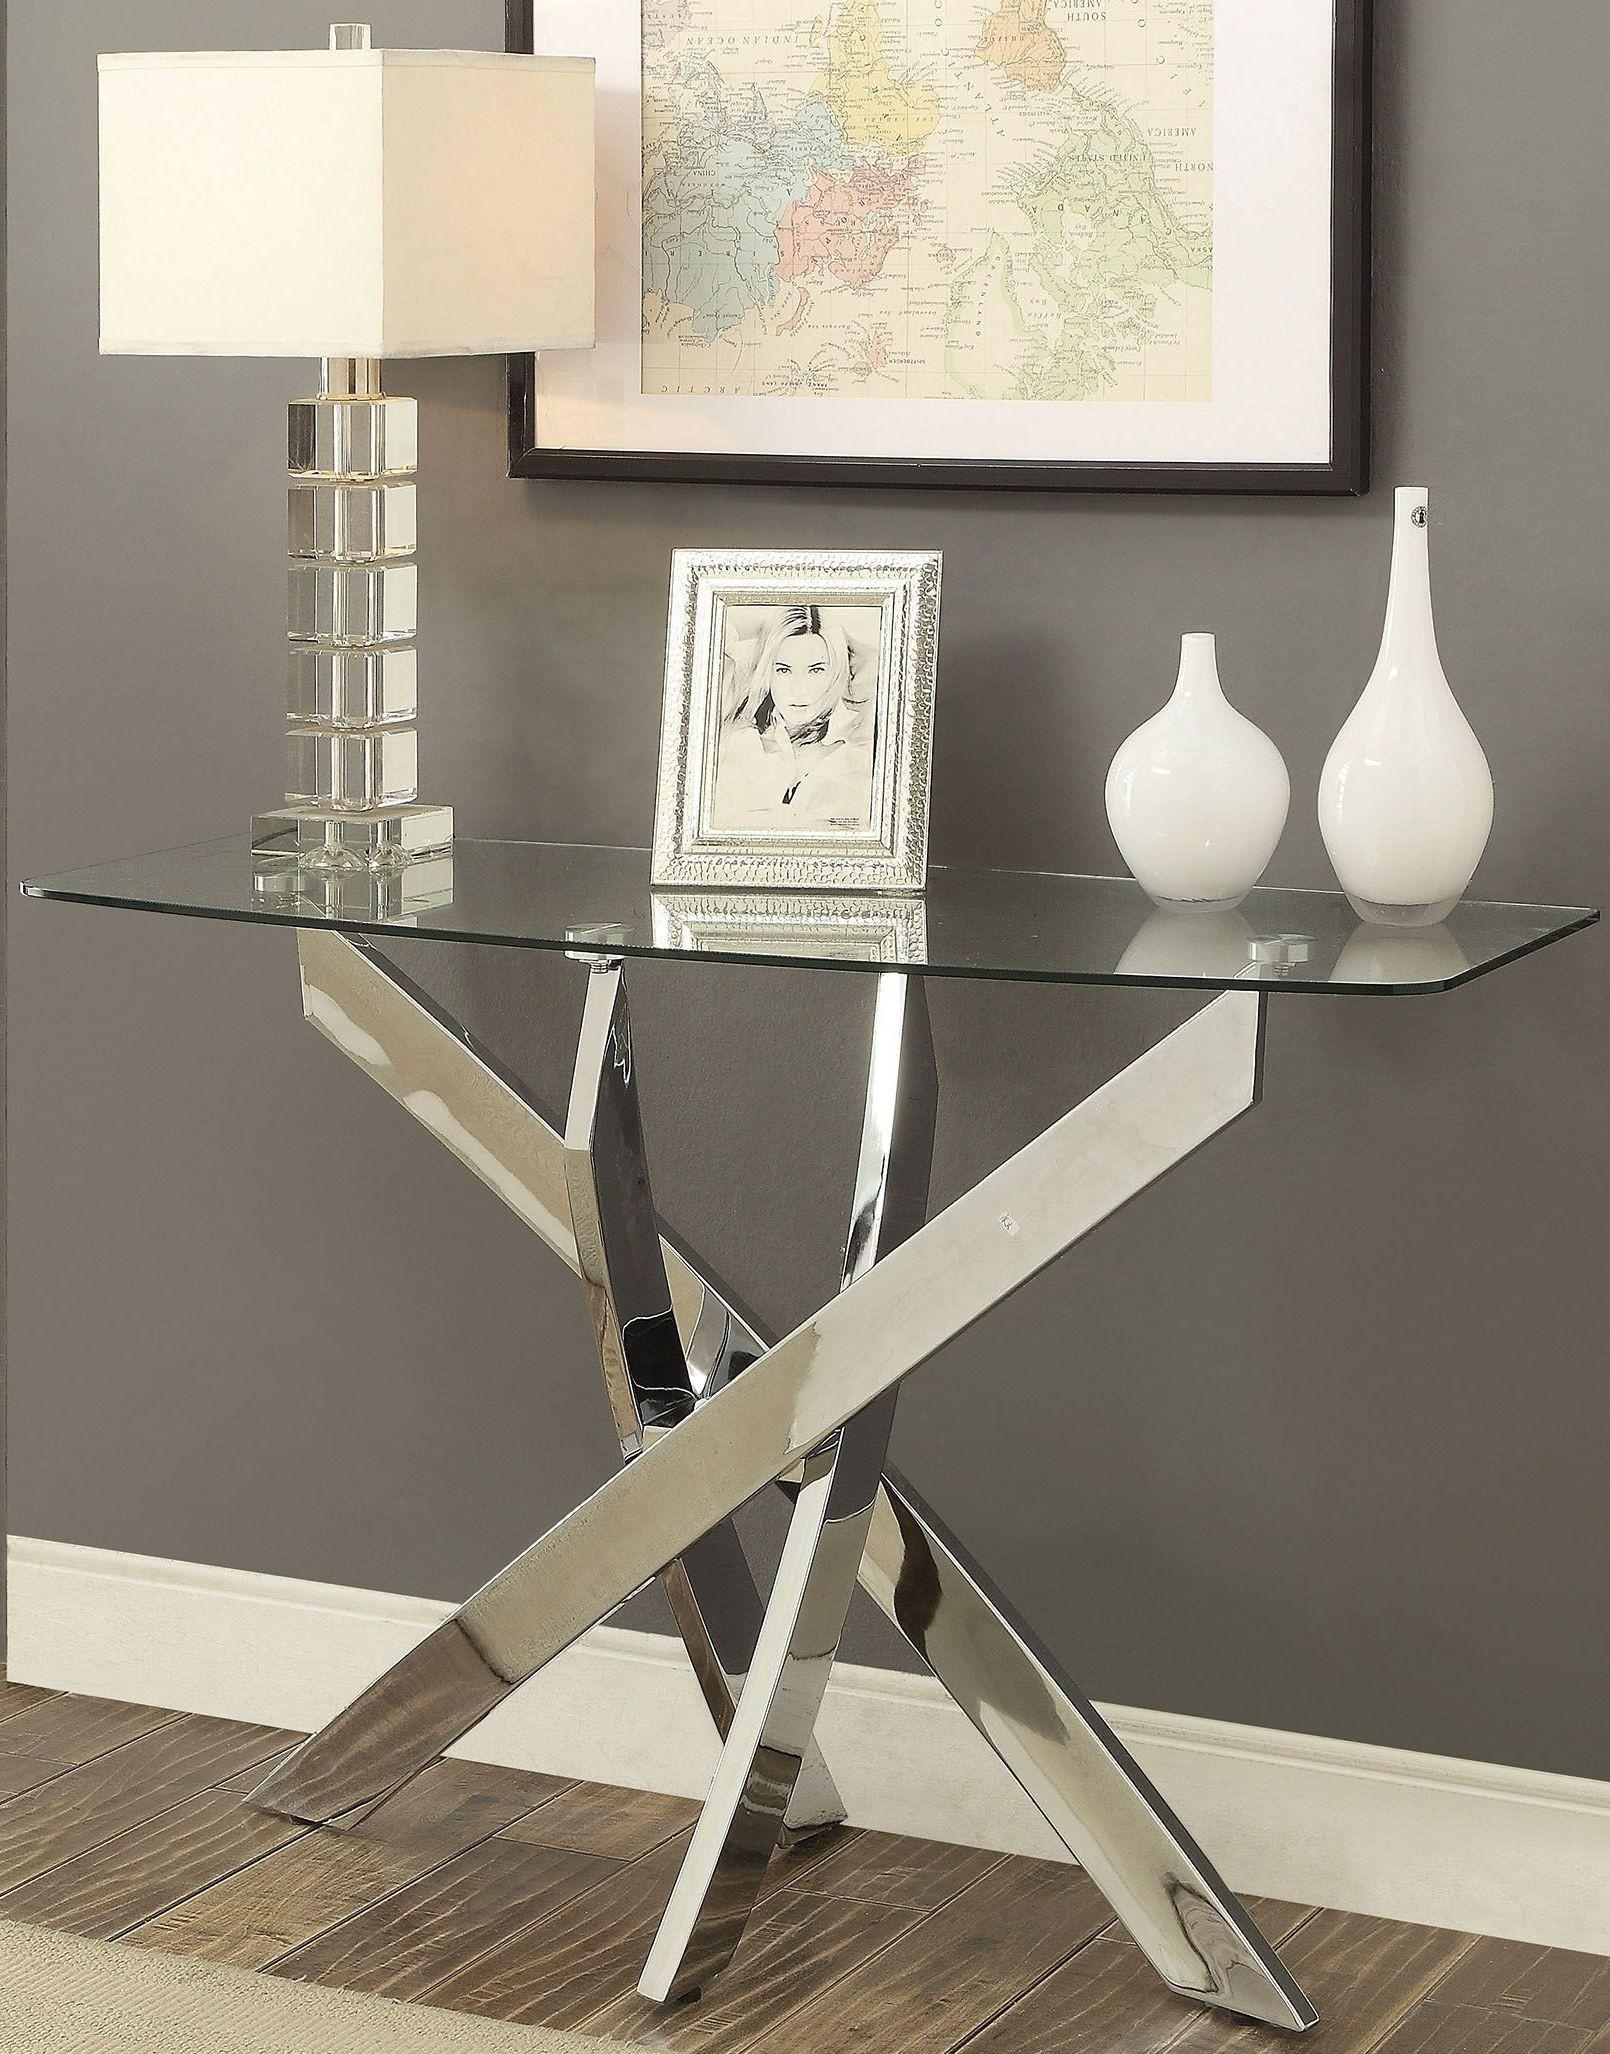 Laila Chrome Sofa Table From Furniture Of America | Coleman Furniture With Regard To Chrome Sofa Tables (Image 12 of 20)